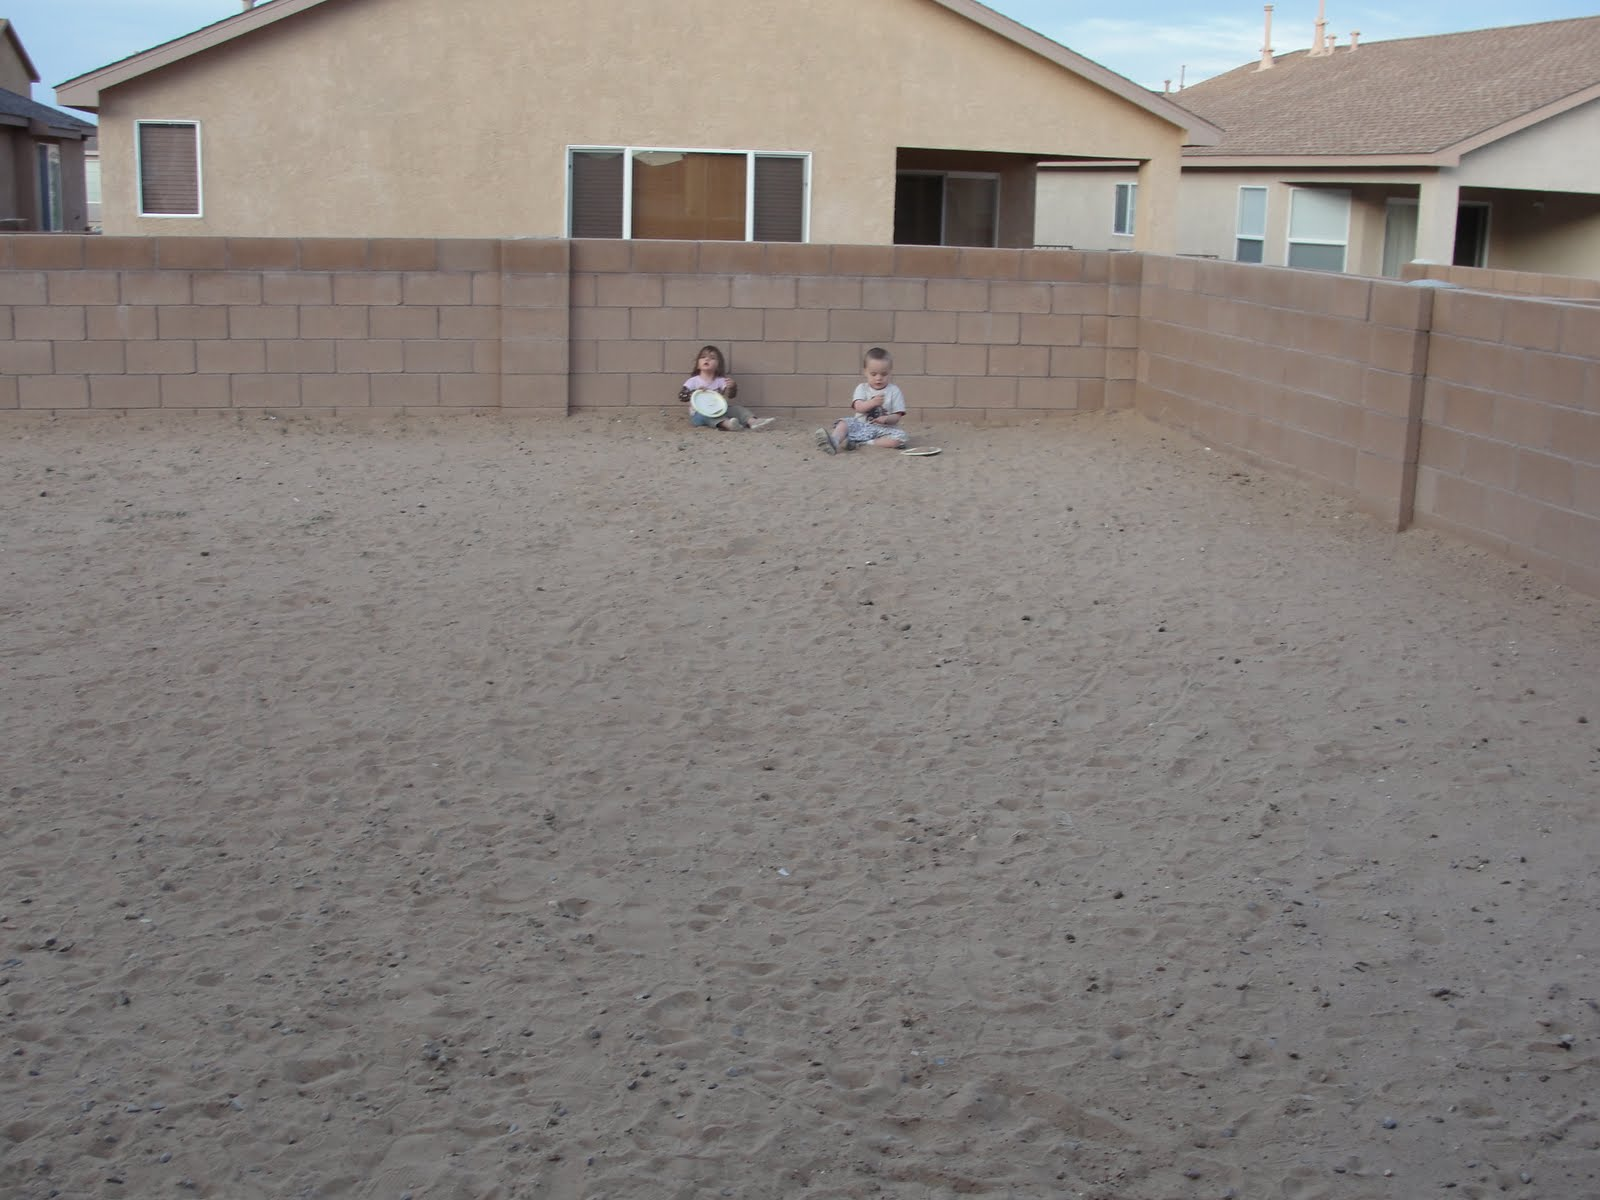 Sand For Backyard for instant beauty add elbow grease: our backyard